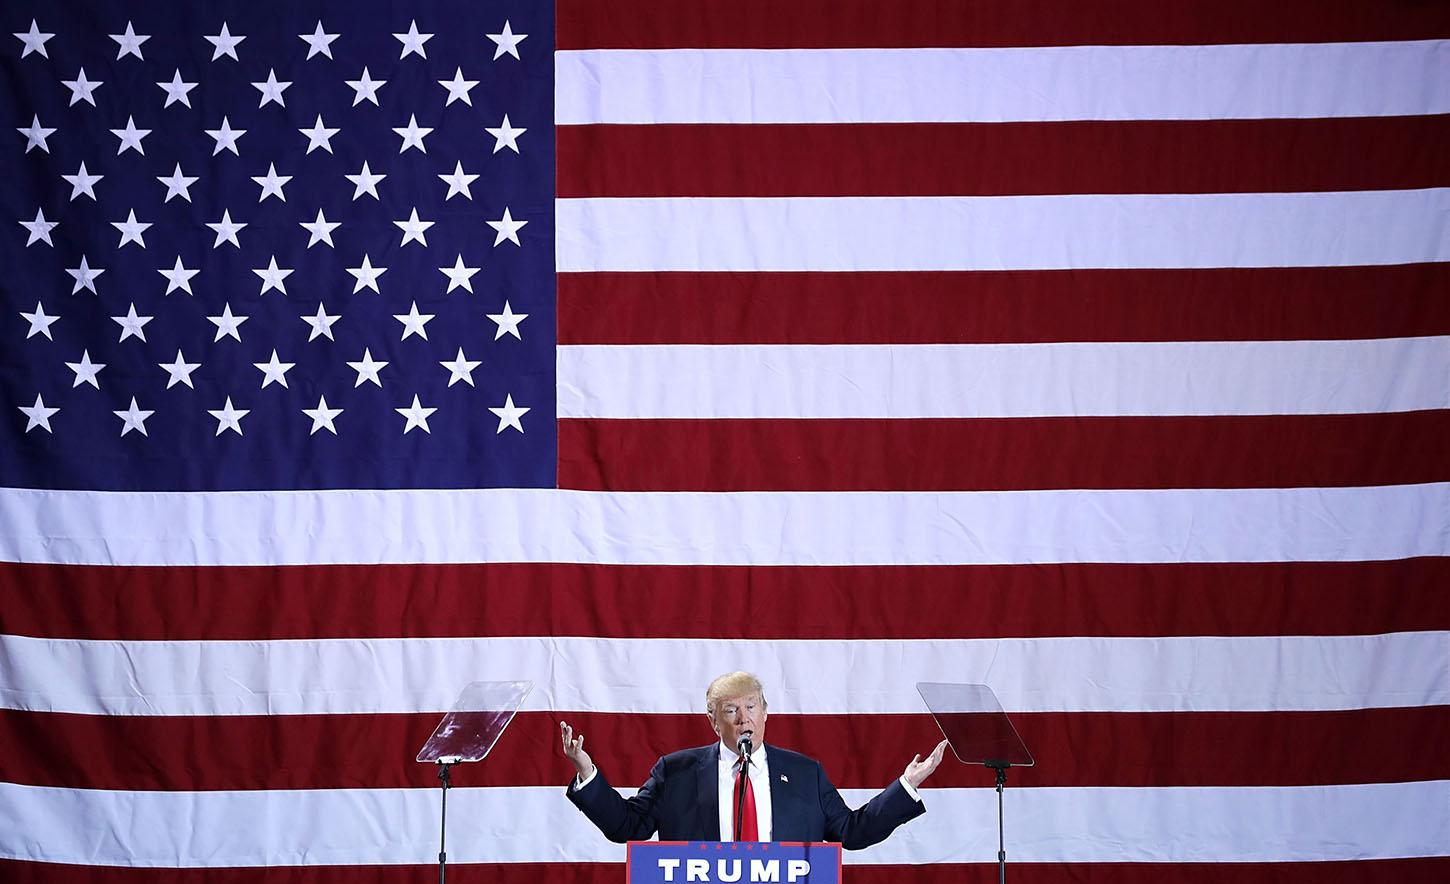 Republican presidential nominee Donald Trump addresses a campaign rally at the Deltaplex Arena October 31, 2016 in Grand Rapids, Michigan. With just eight days until the election, polls show a slight tightening in the race.